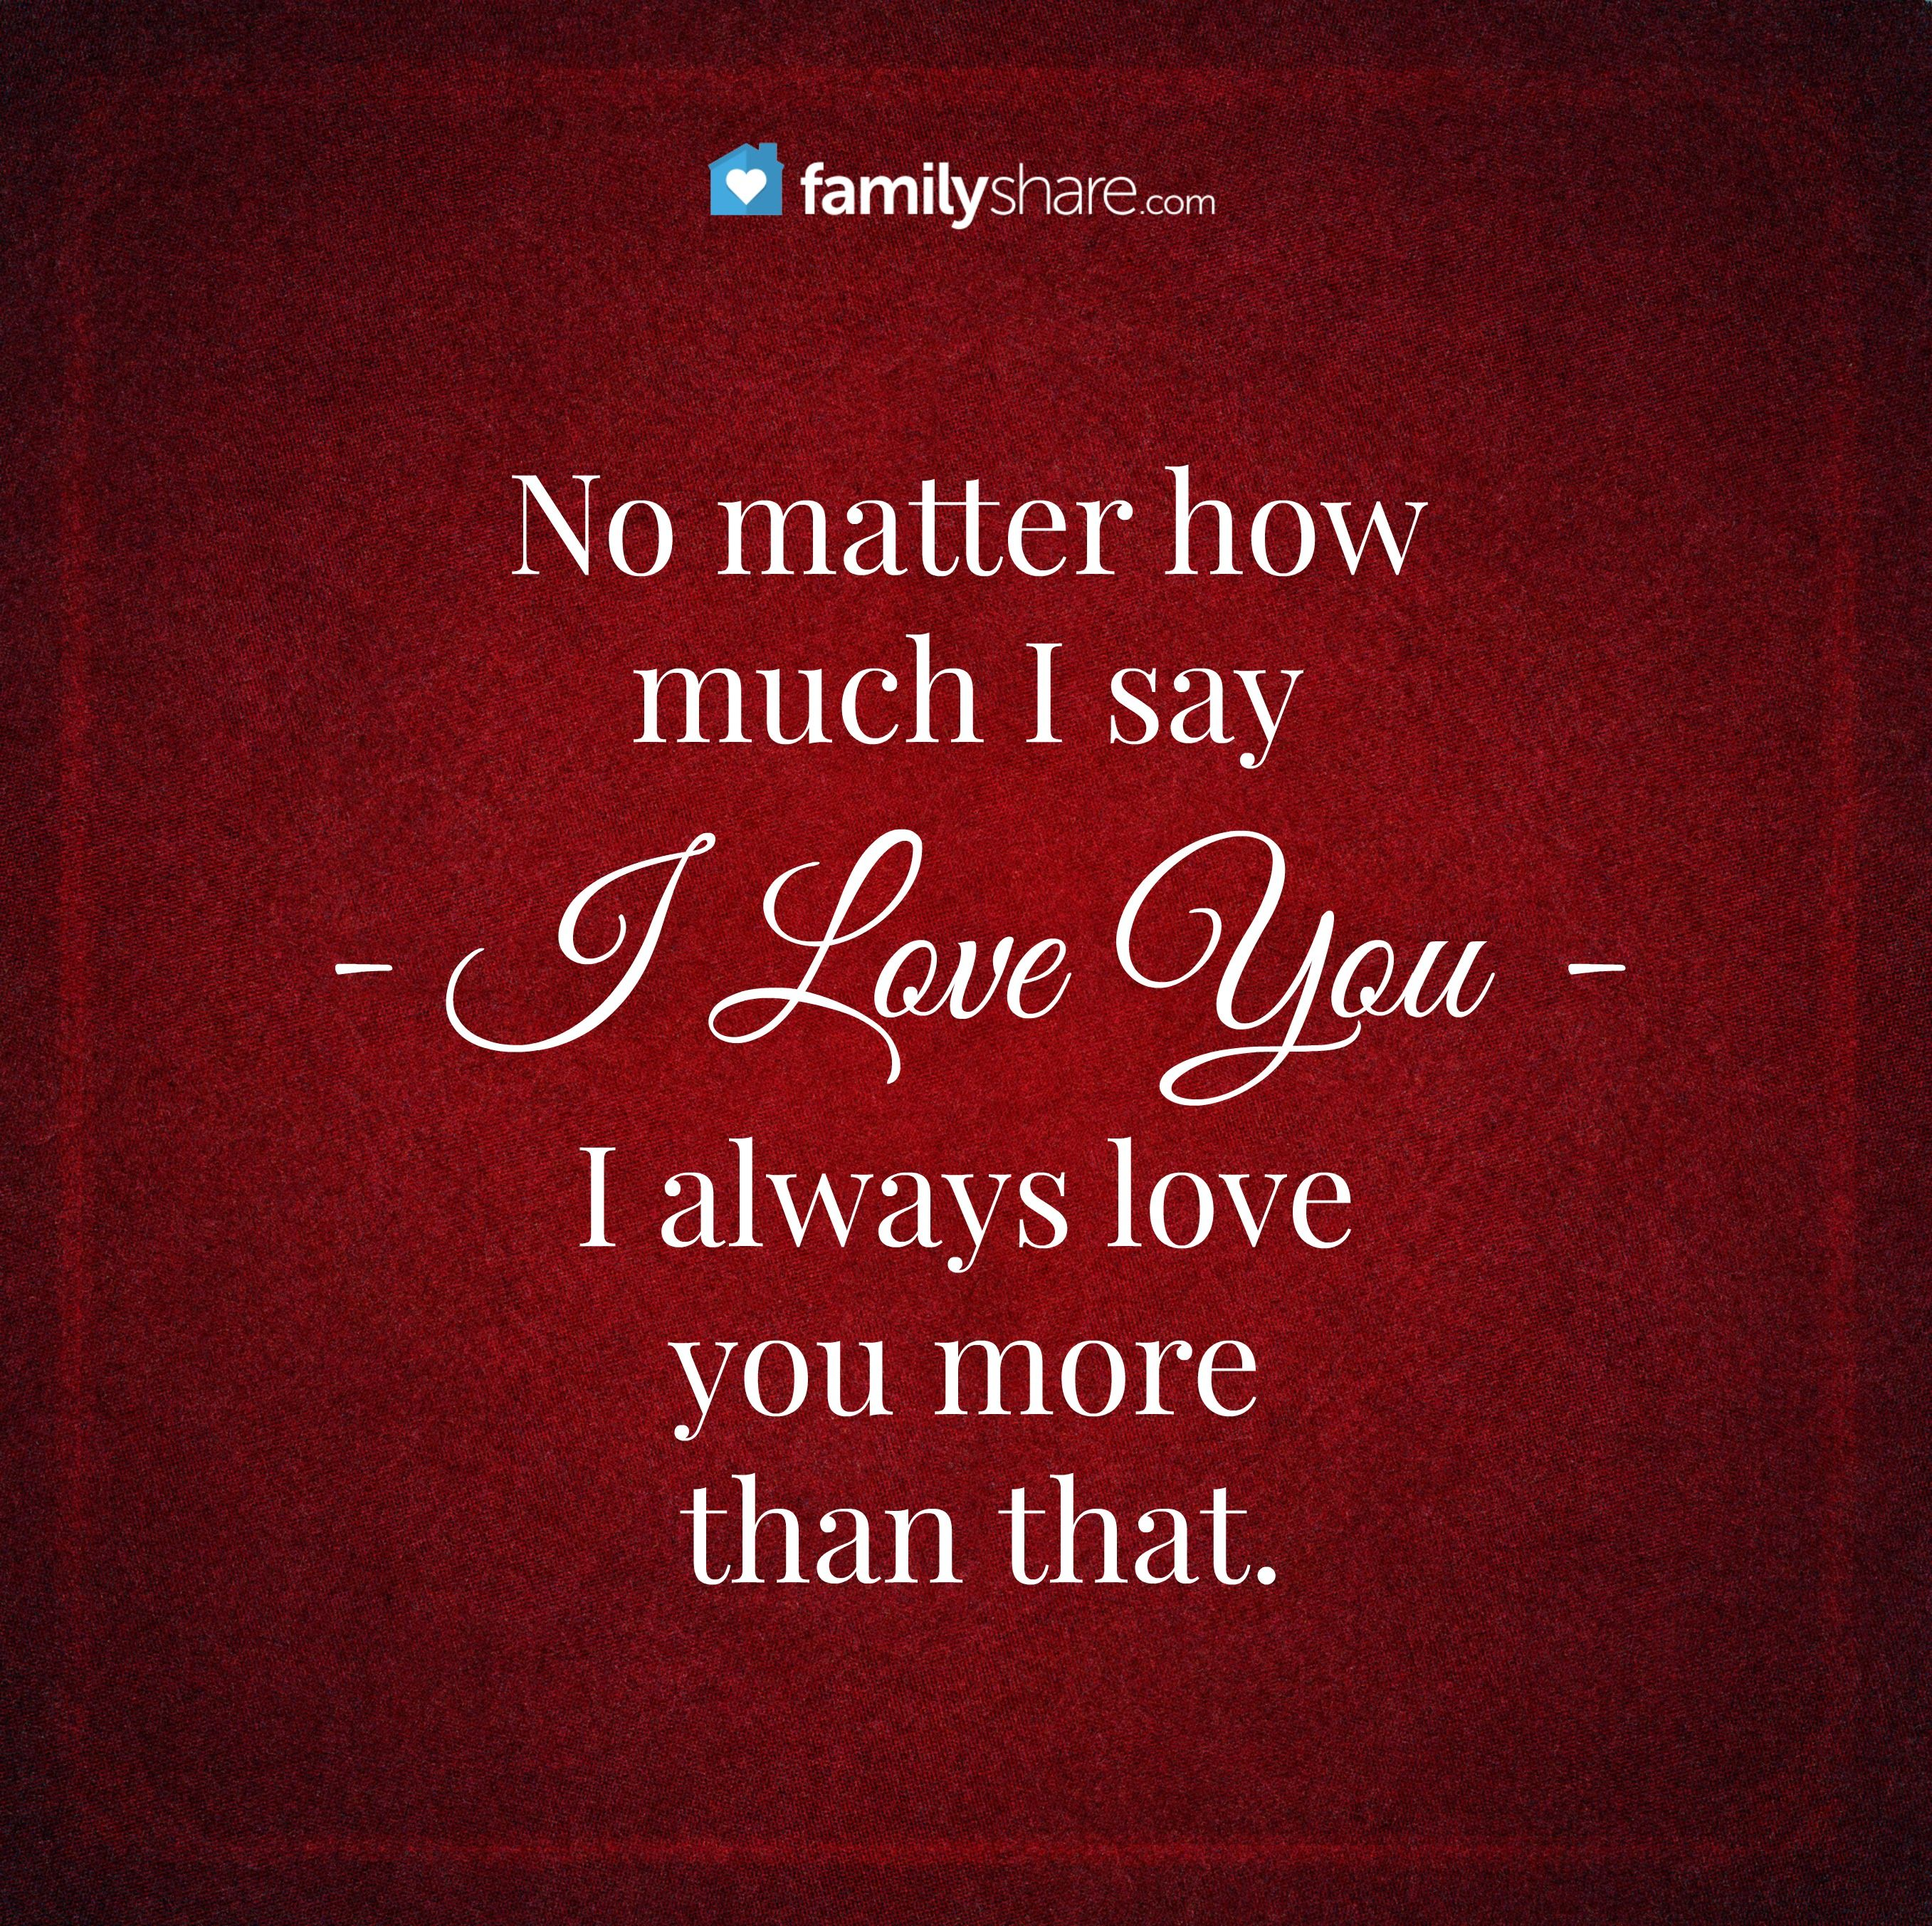 I Love You Quotes: No Matter How Much I Say I Love You, I Always Love You